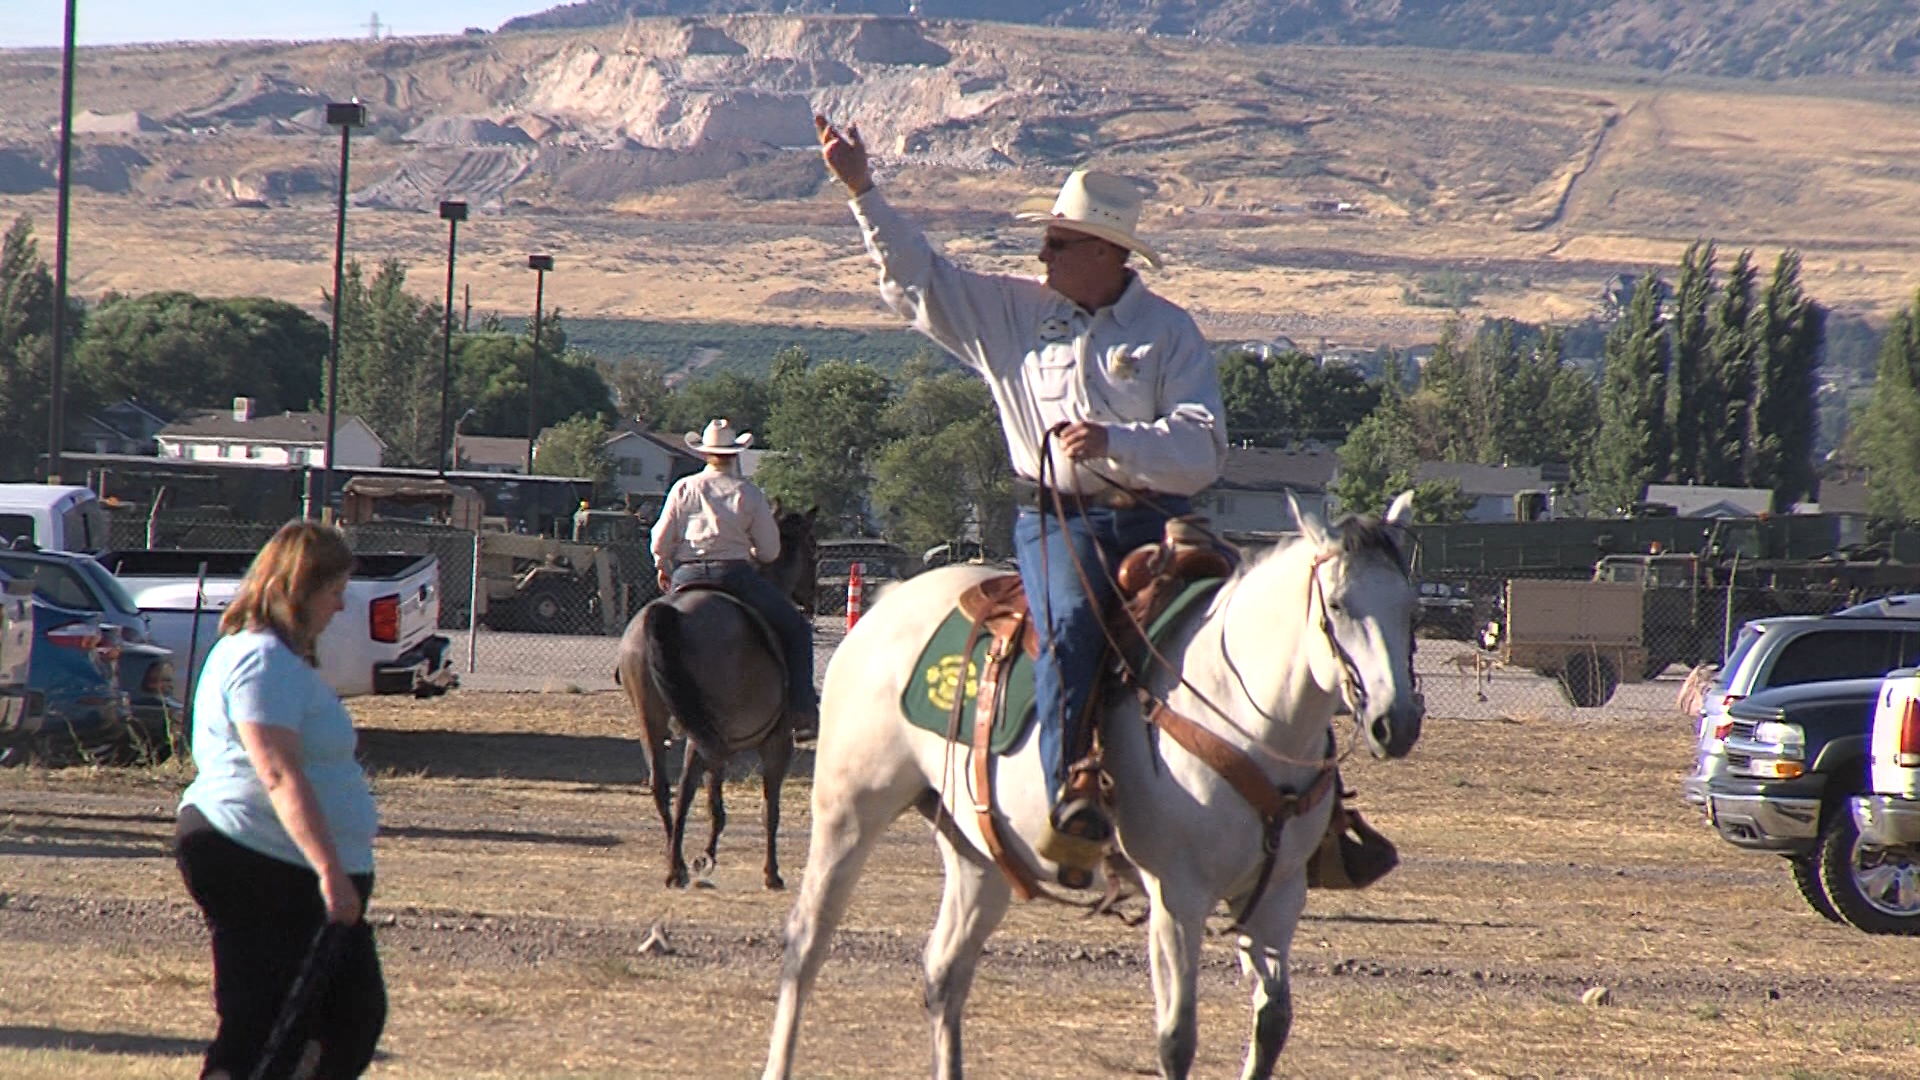 Sheriff's Mounted Posse keeps western traditions alive in Weber County